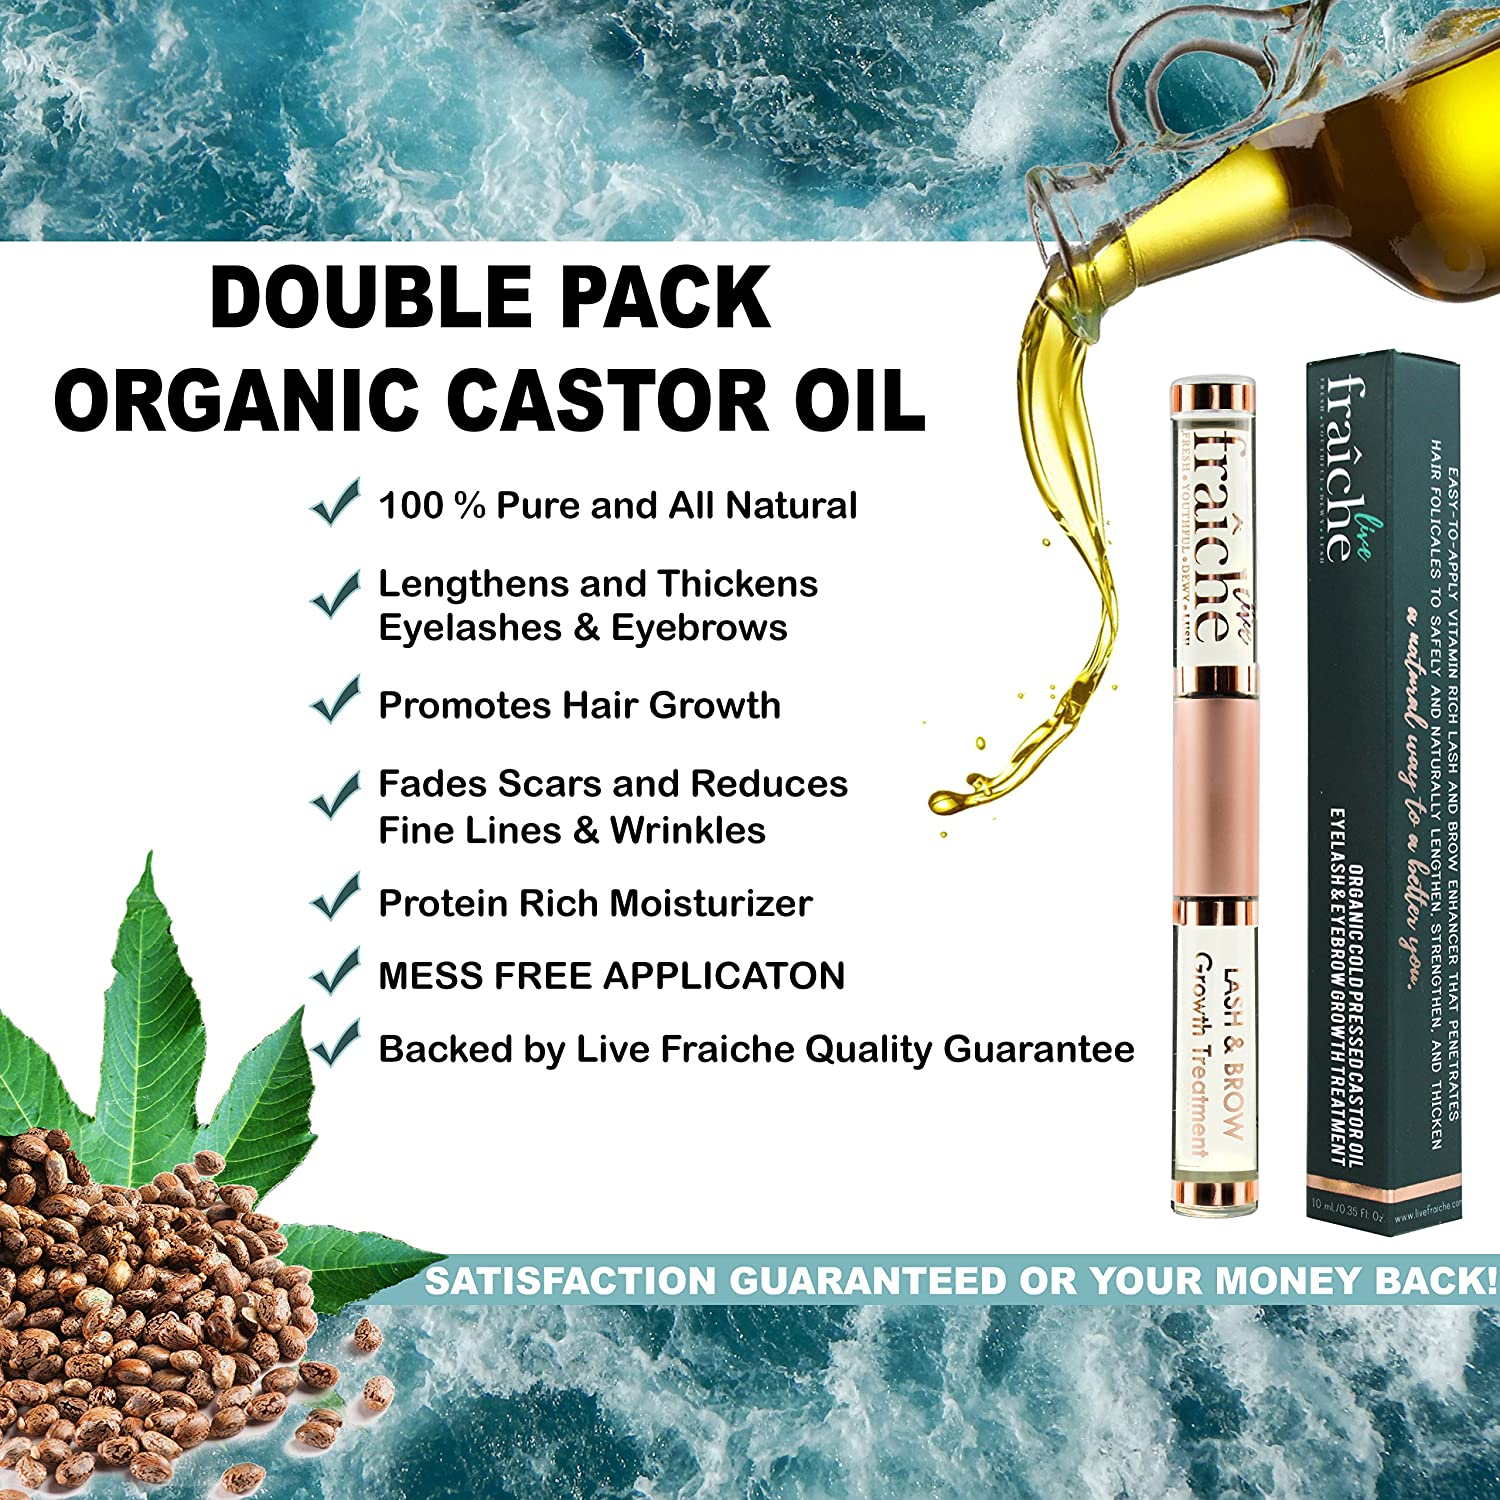 2 PACK Best Organic Eyelash Eyebrow Hair Growth Conditioning Treatment Castor Oil Cold Pressed – 100 Pure Certified Hexane Free with Mascara Tube Eyeliner Brush Applicator to condition lash brow